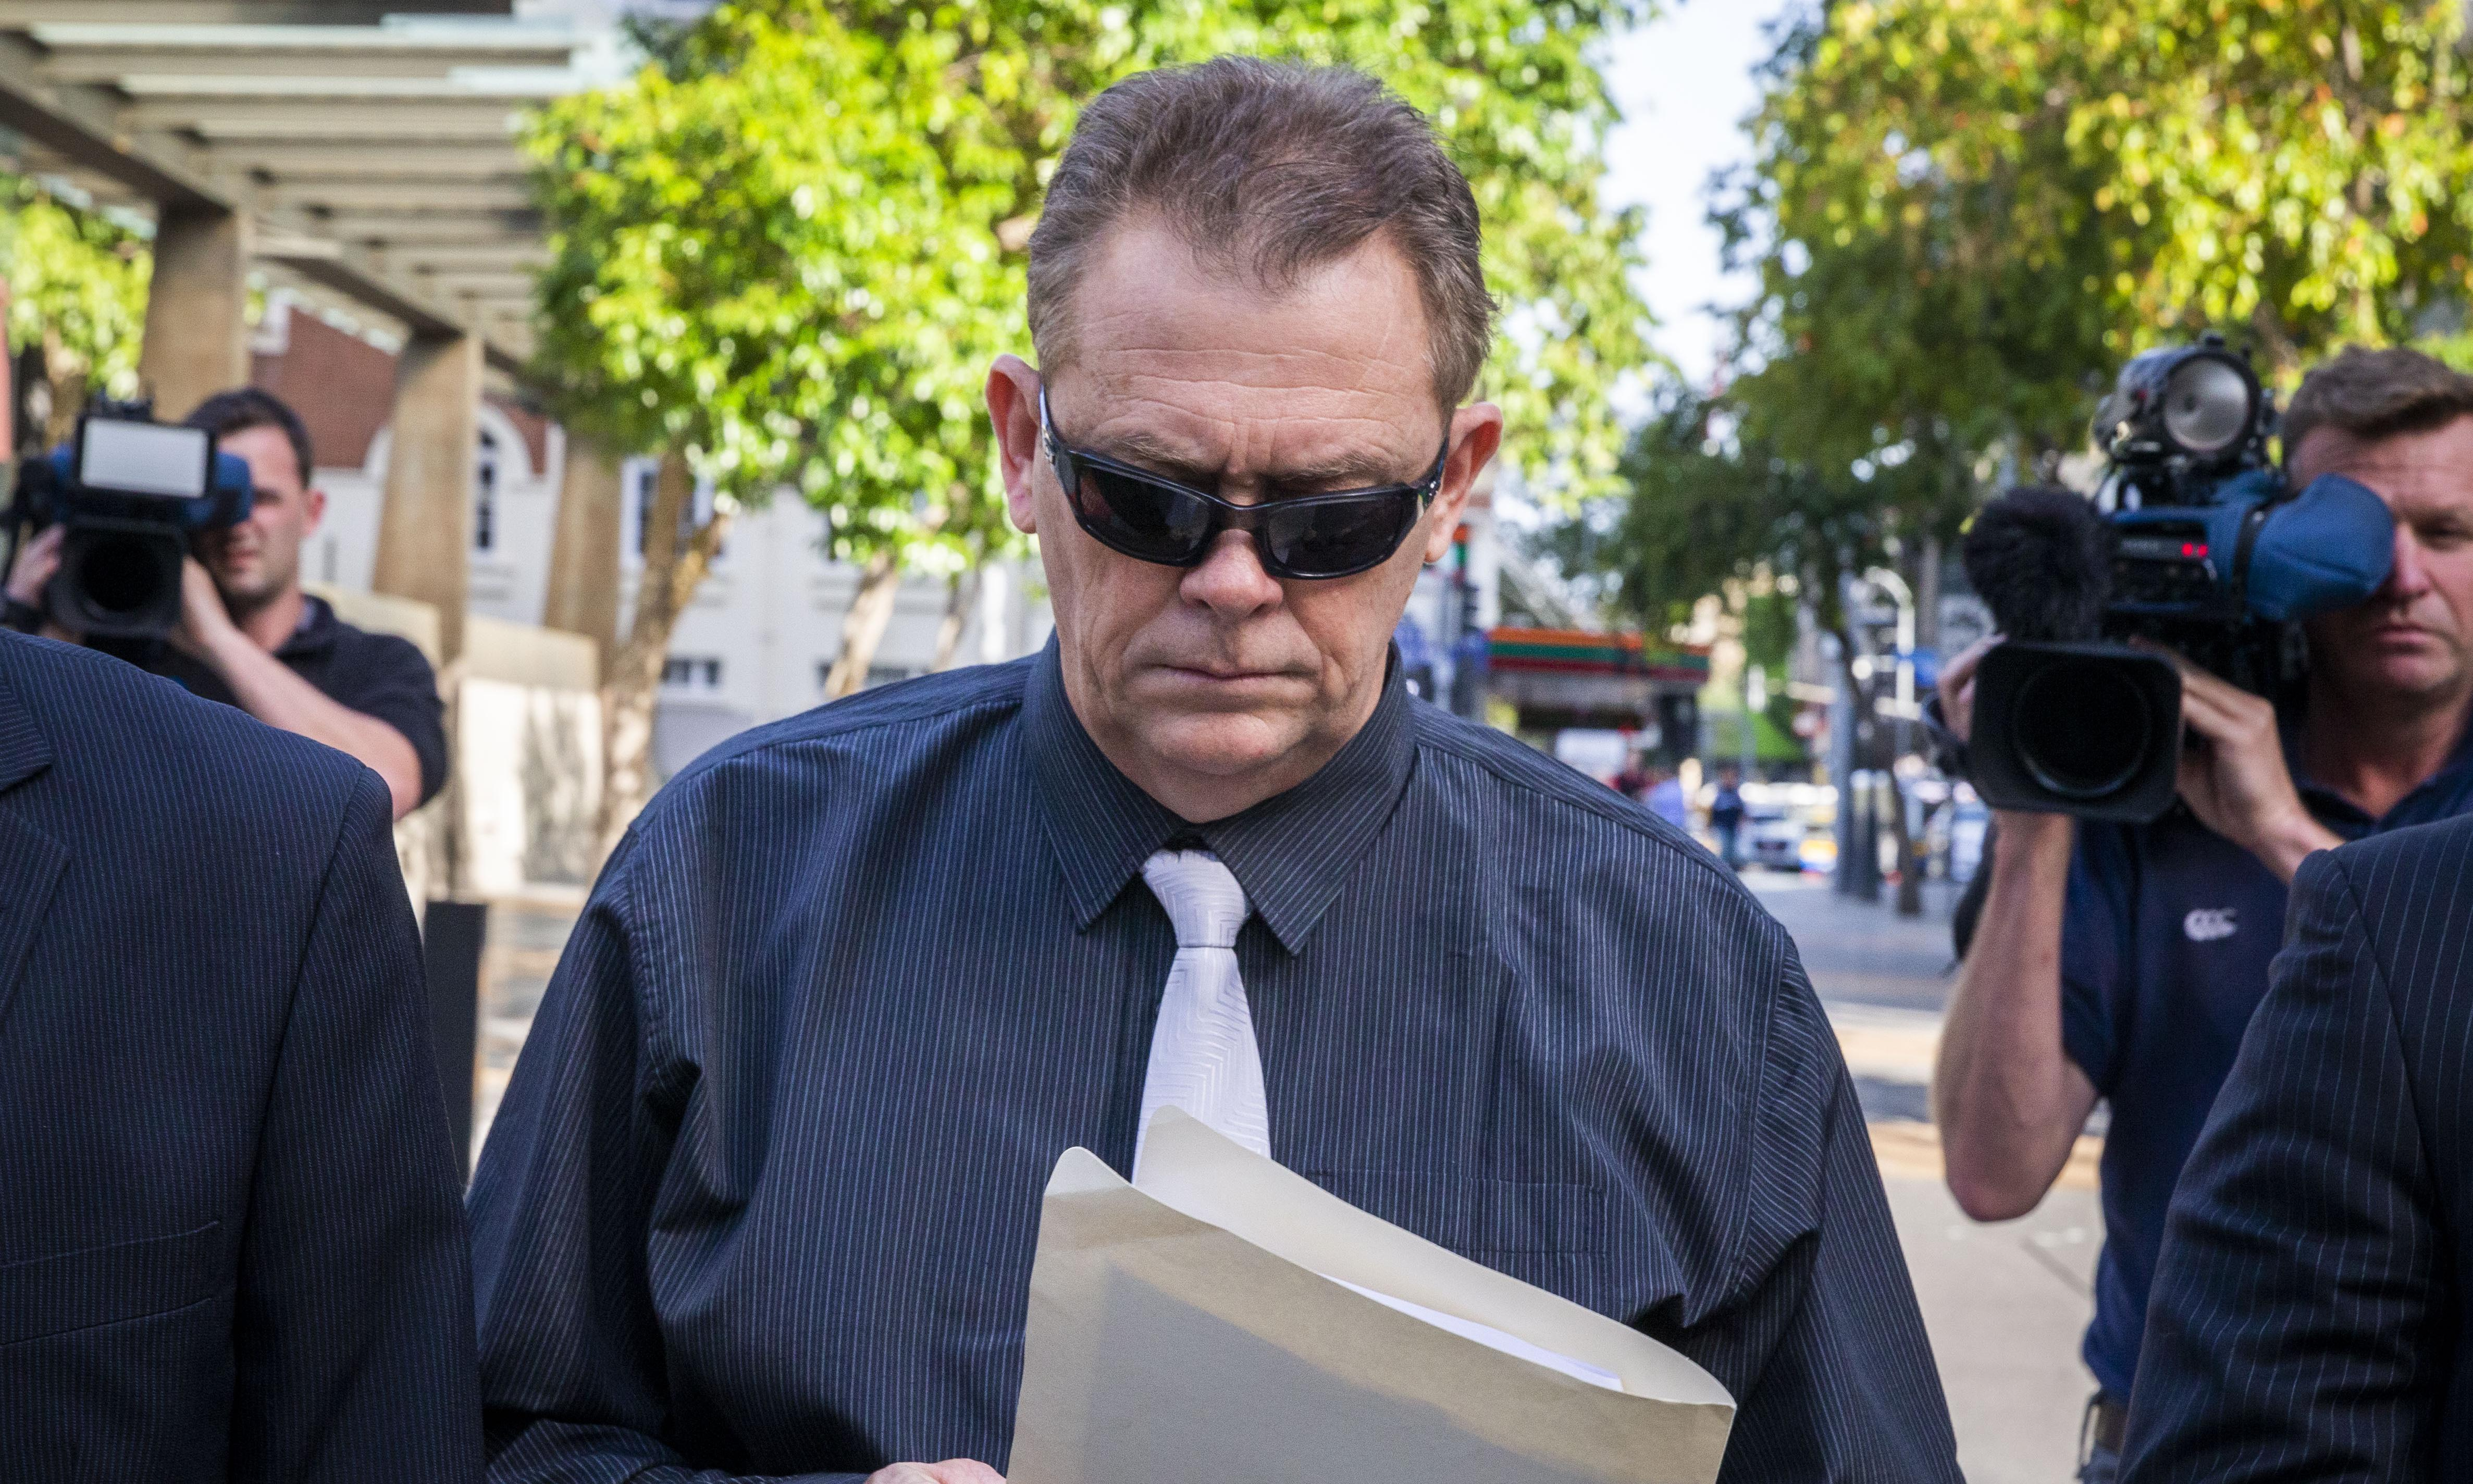 Queensland police delay decision on whether to sack officer who leaked abuse victim's details